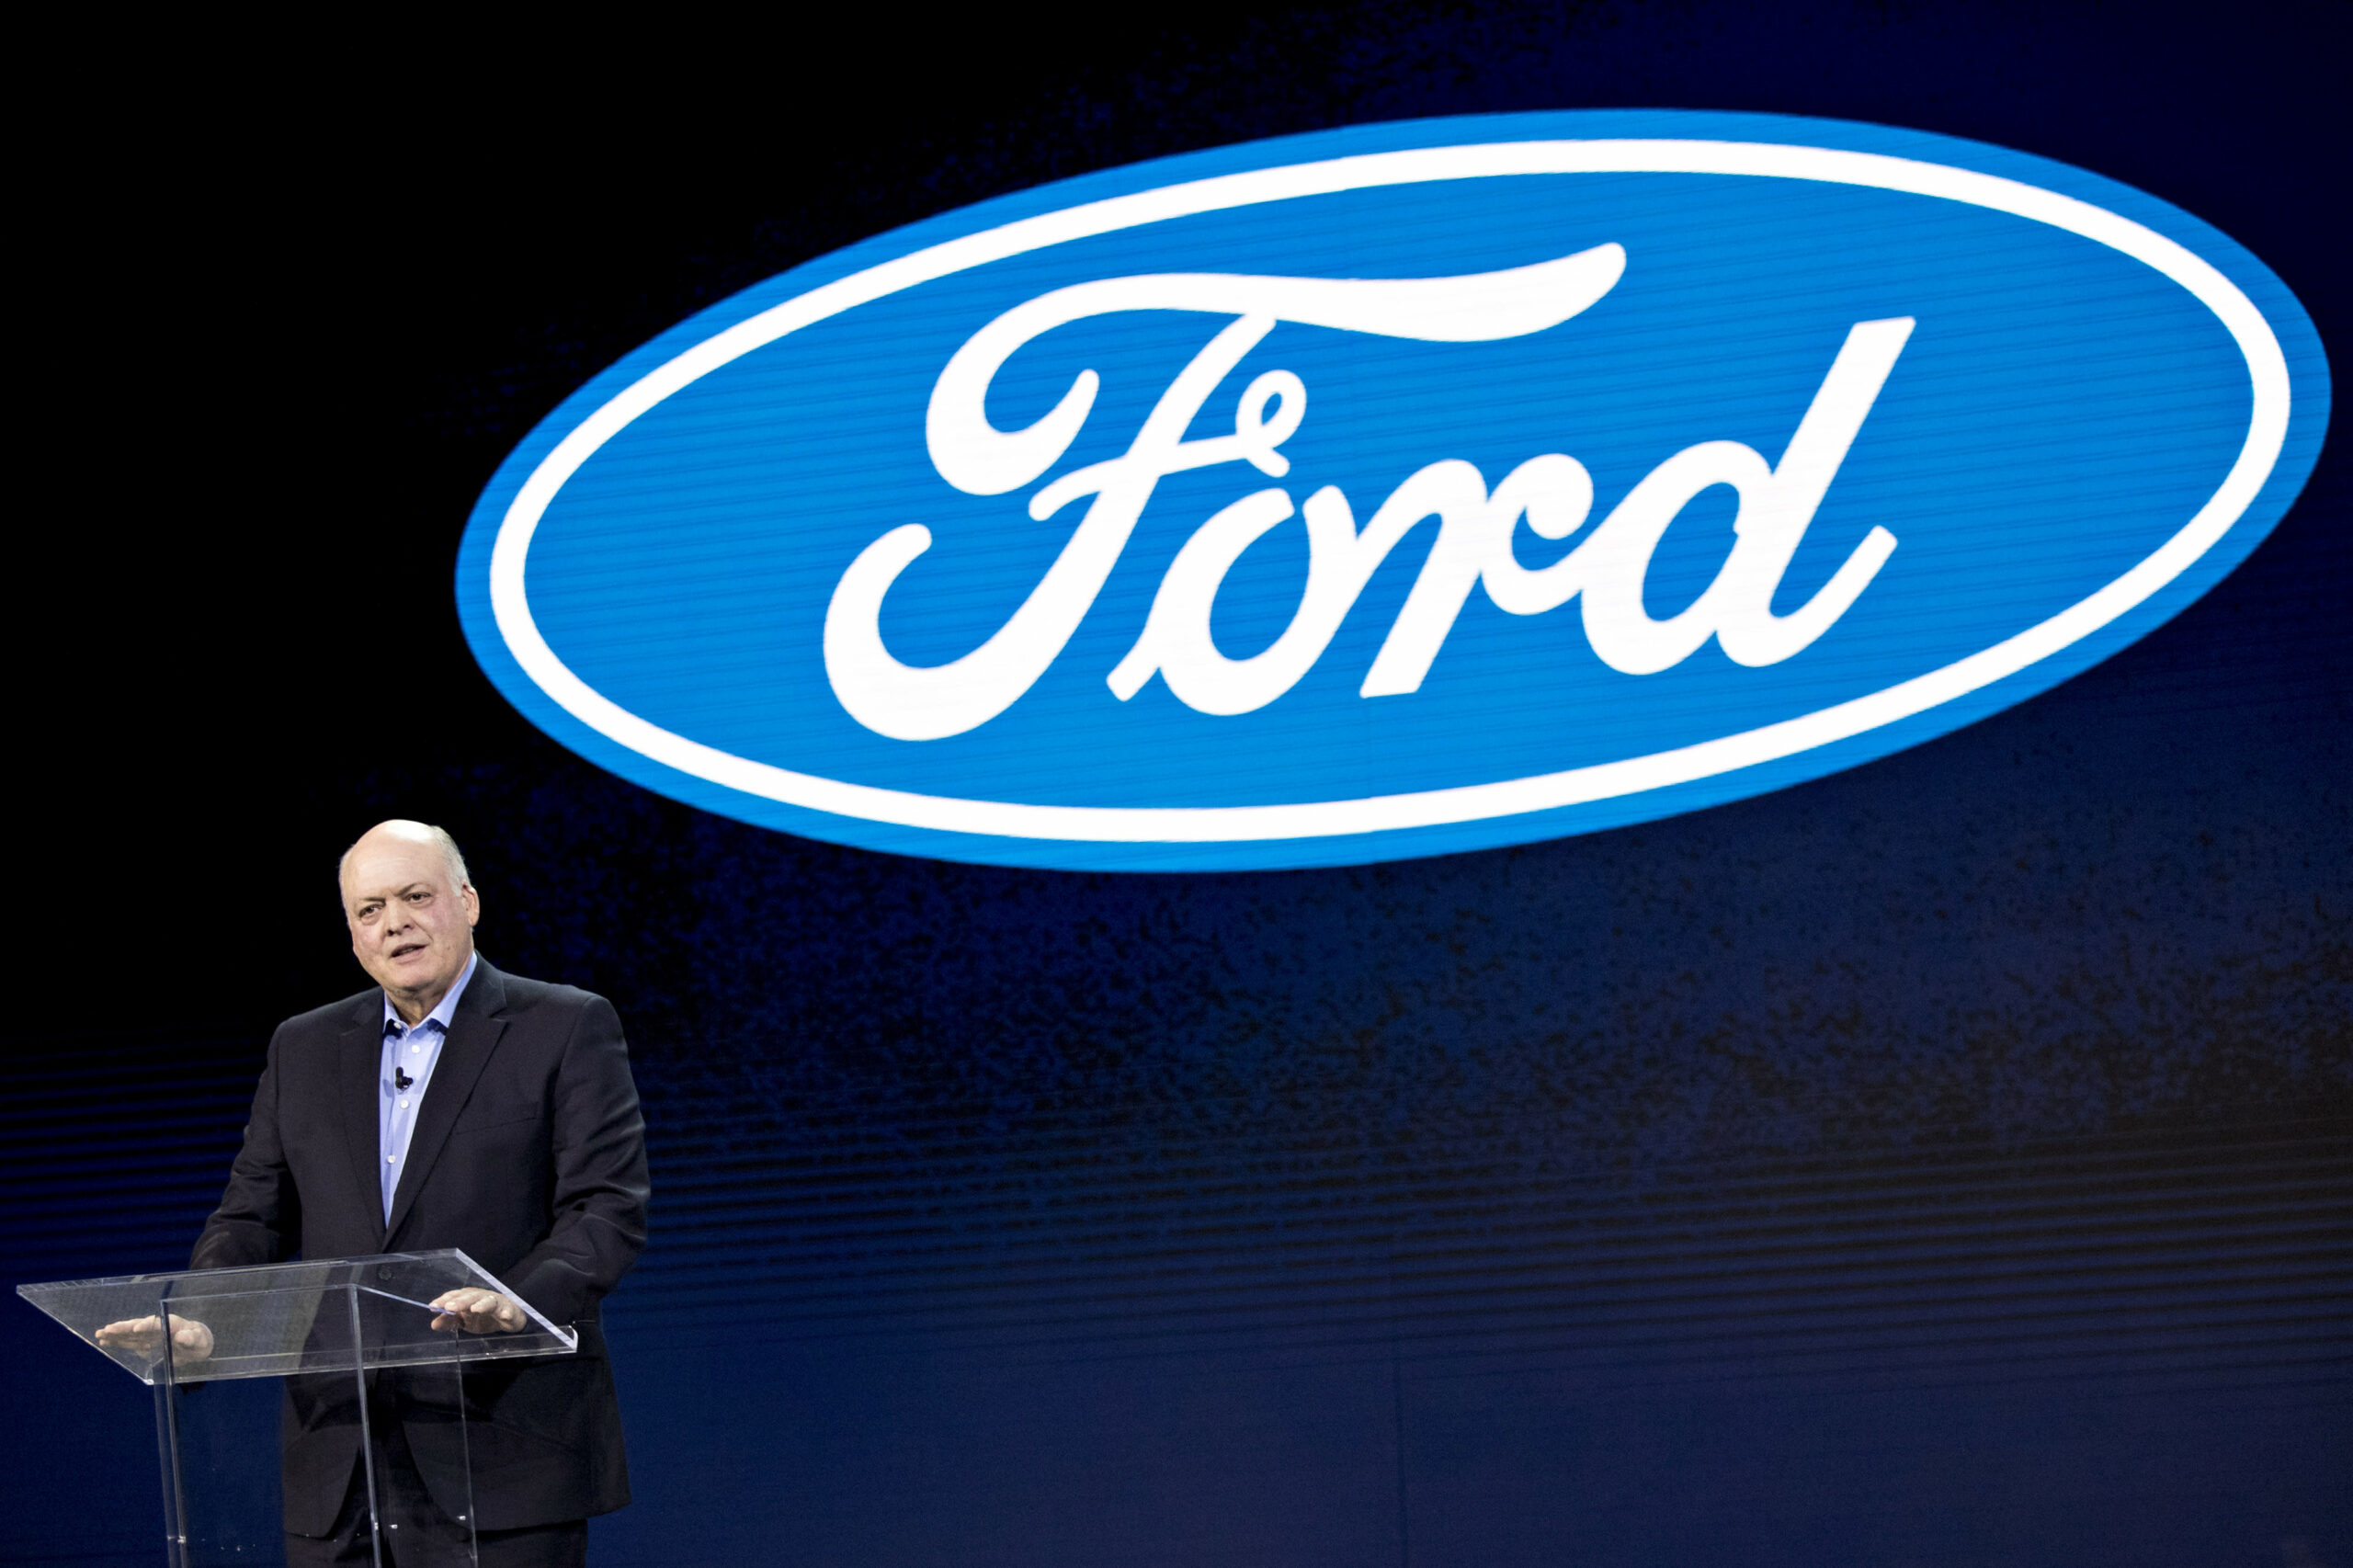 Ford shares fall on first-quarter revenue warning, sees losses ahead - ford dividend date 2020